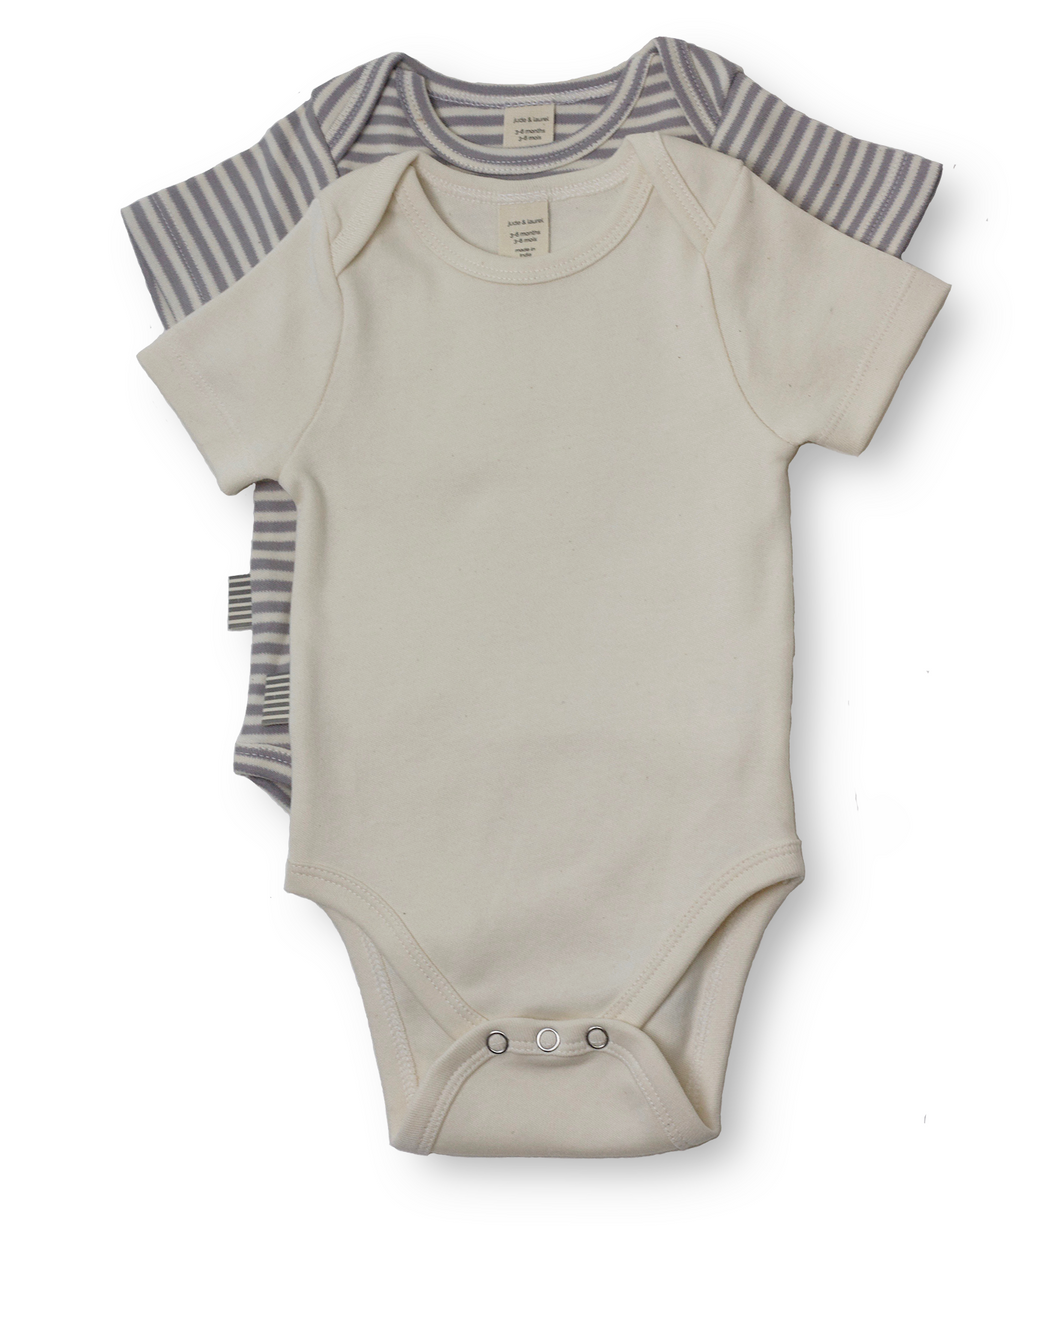 Fave Short Sleeve Onesie Gift Sets ~ Natural Sleet Stripe and Natural